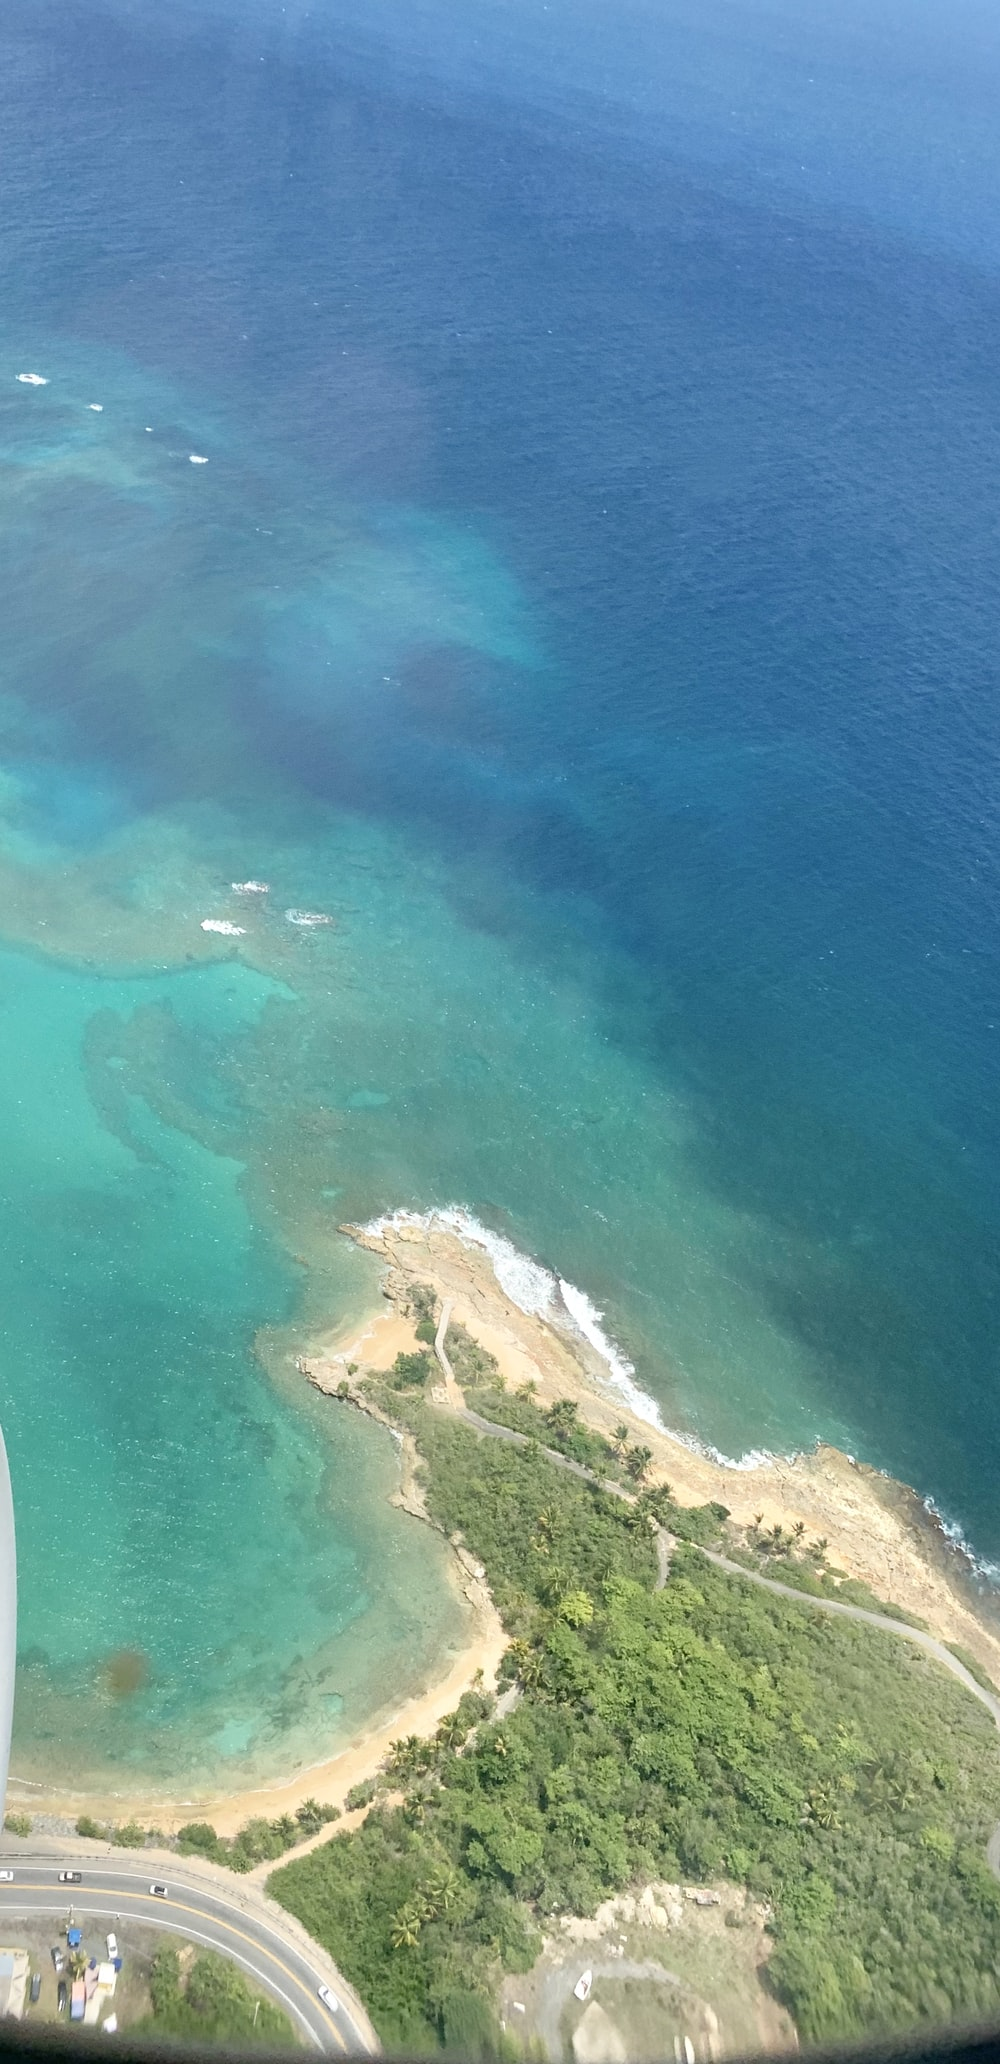 aerial view of green and brown island during daytime